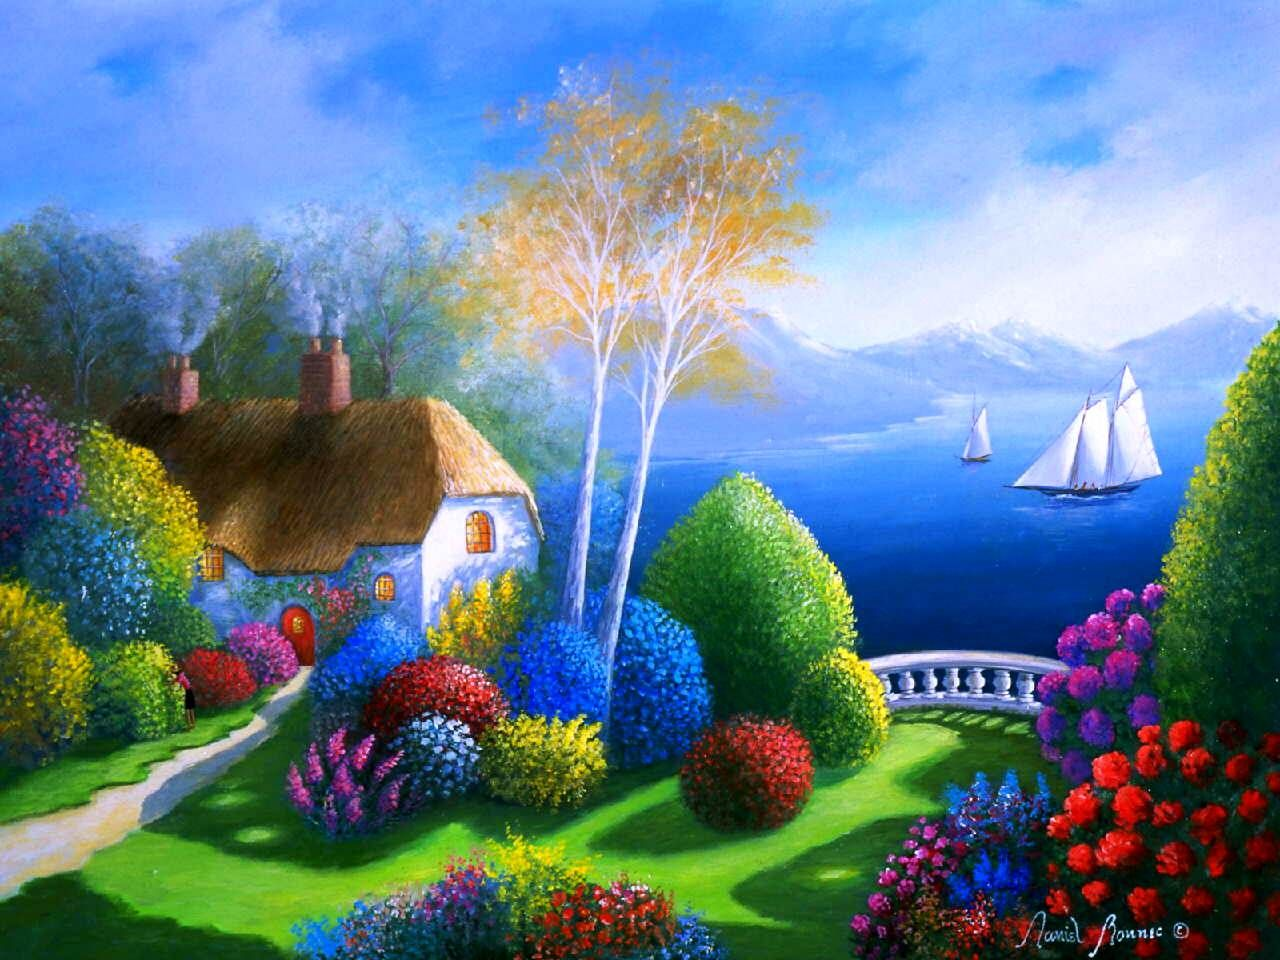 Colorful view art boat flower house painting path tree 212331 1280x960